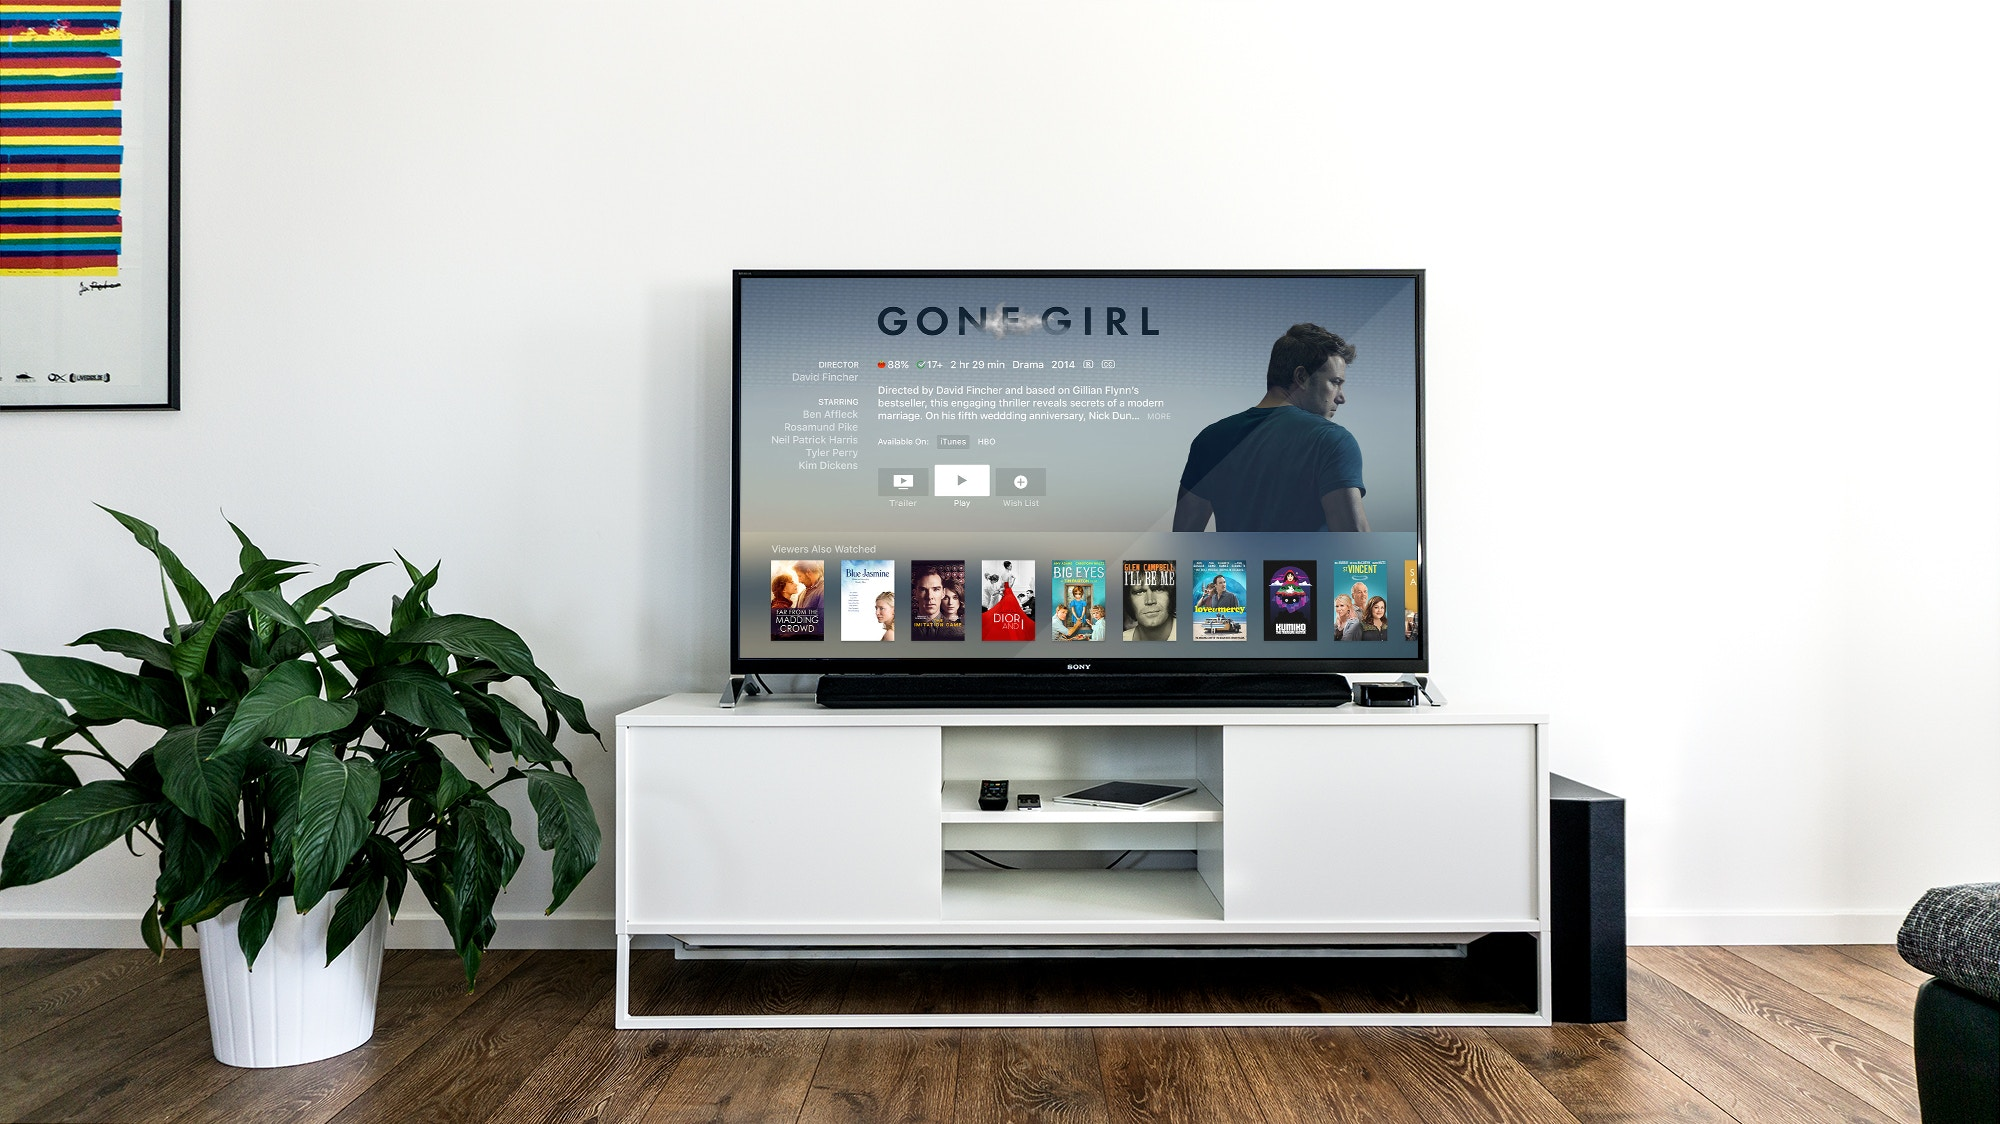 watching tv to learn a new language